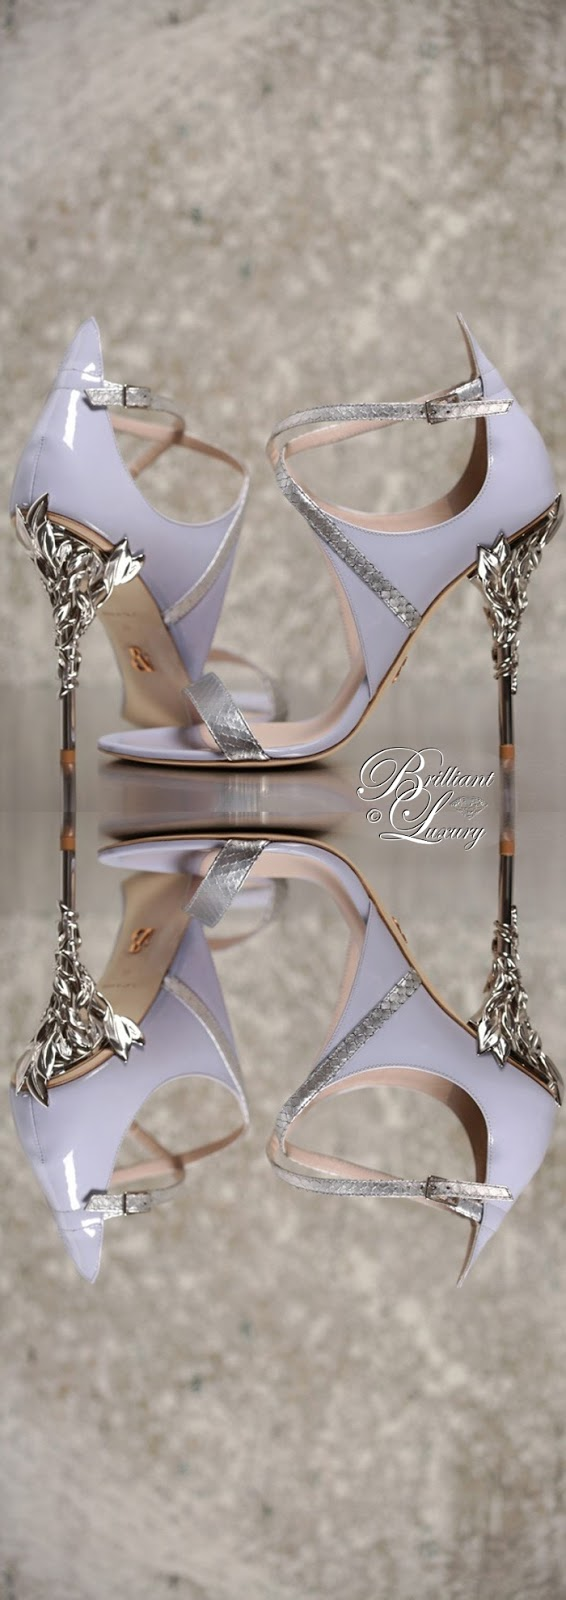 Brilliant Luxury ♦ Ralph and Russo  Eden Sandal in Lavender & Silver Python with Silver Sleaves